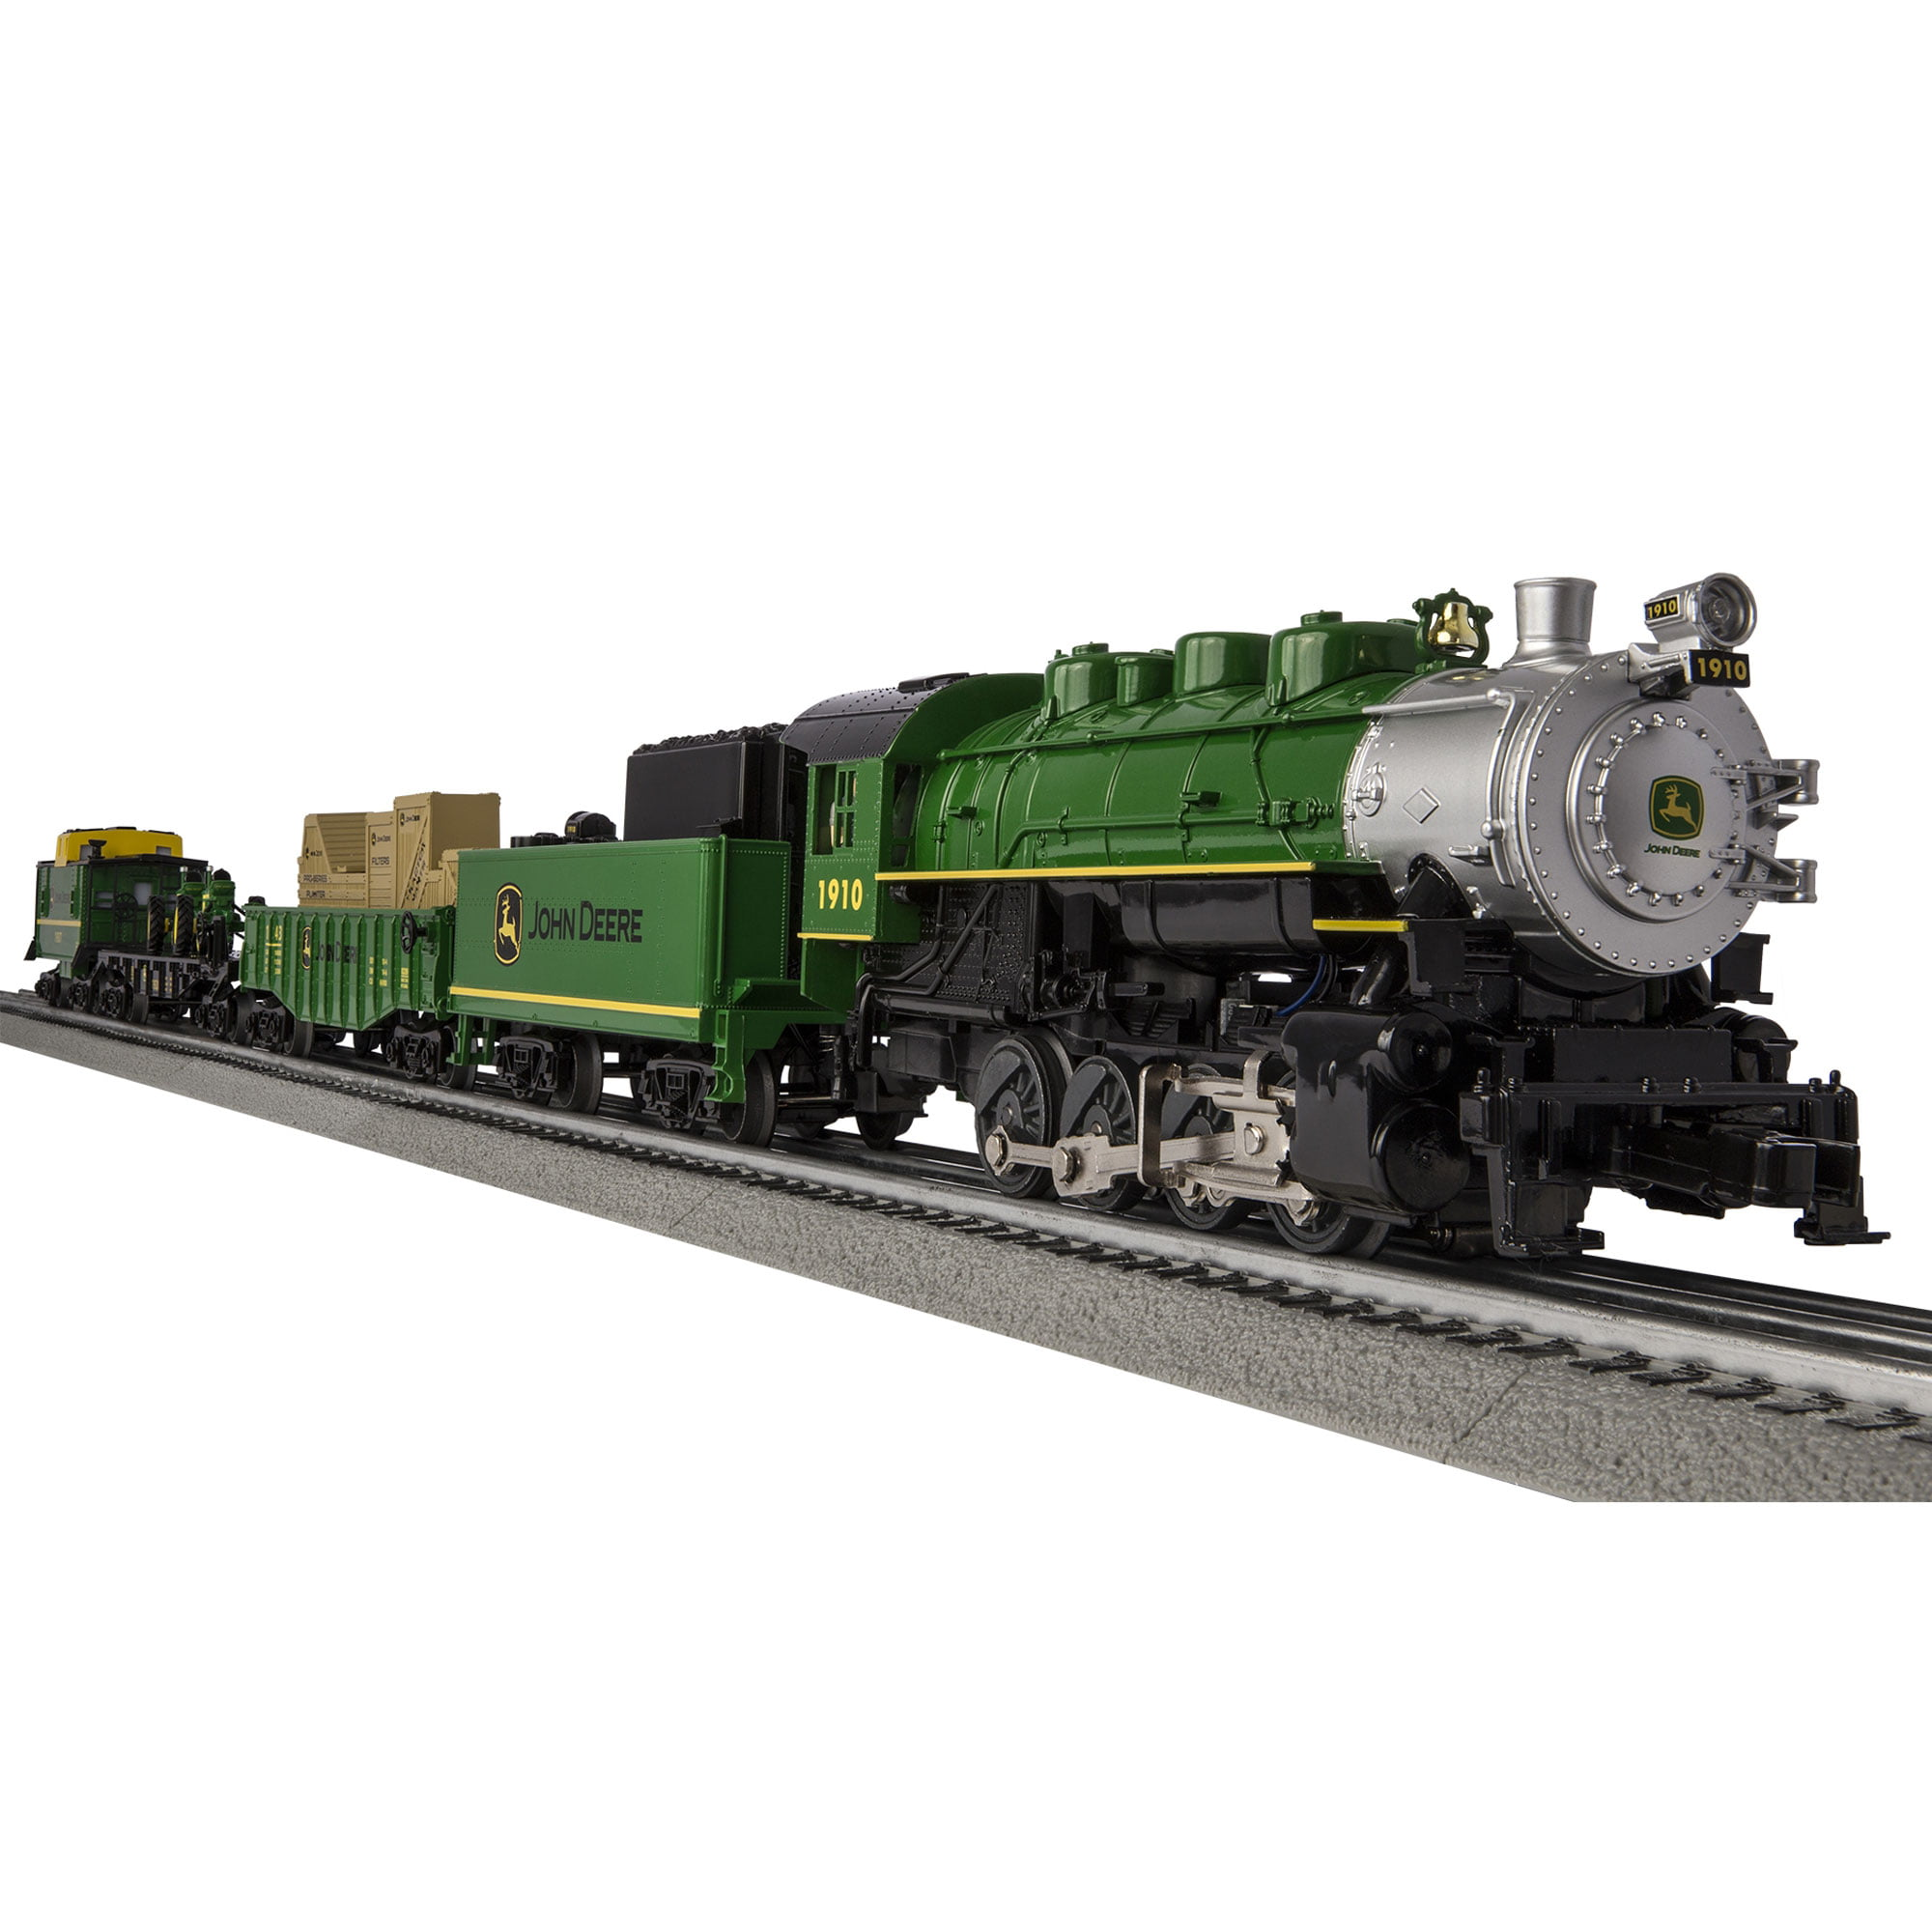 Lionel Trains John Deere LionChief Ready-to-Run Train Set by Generic